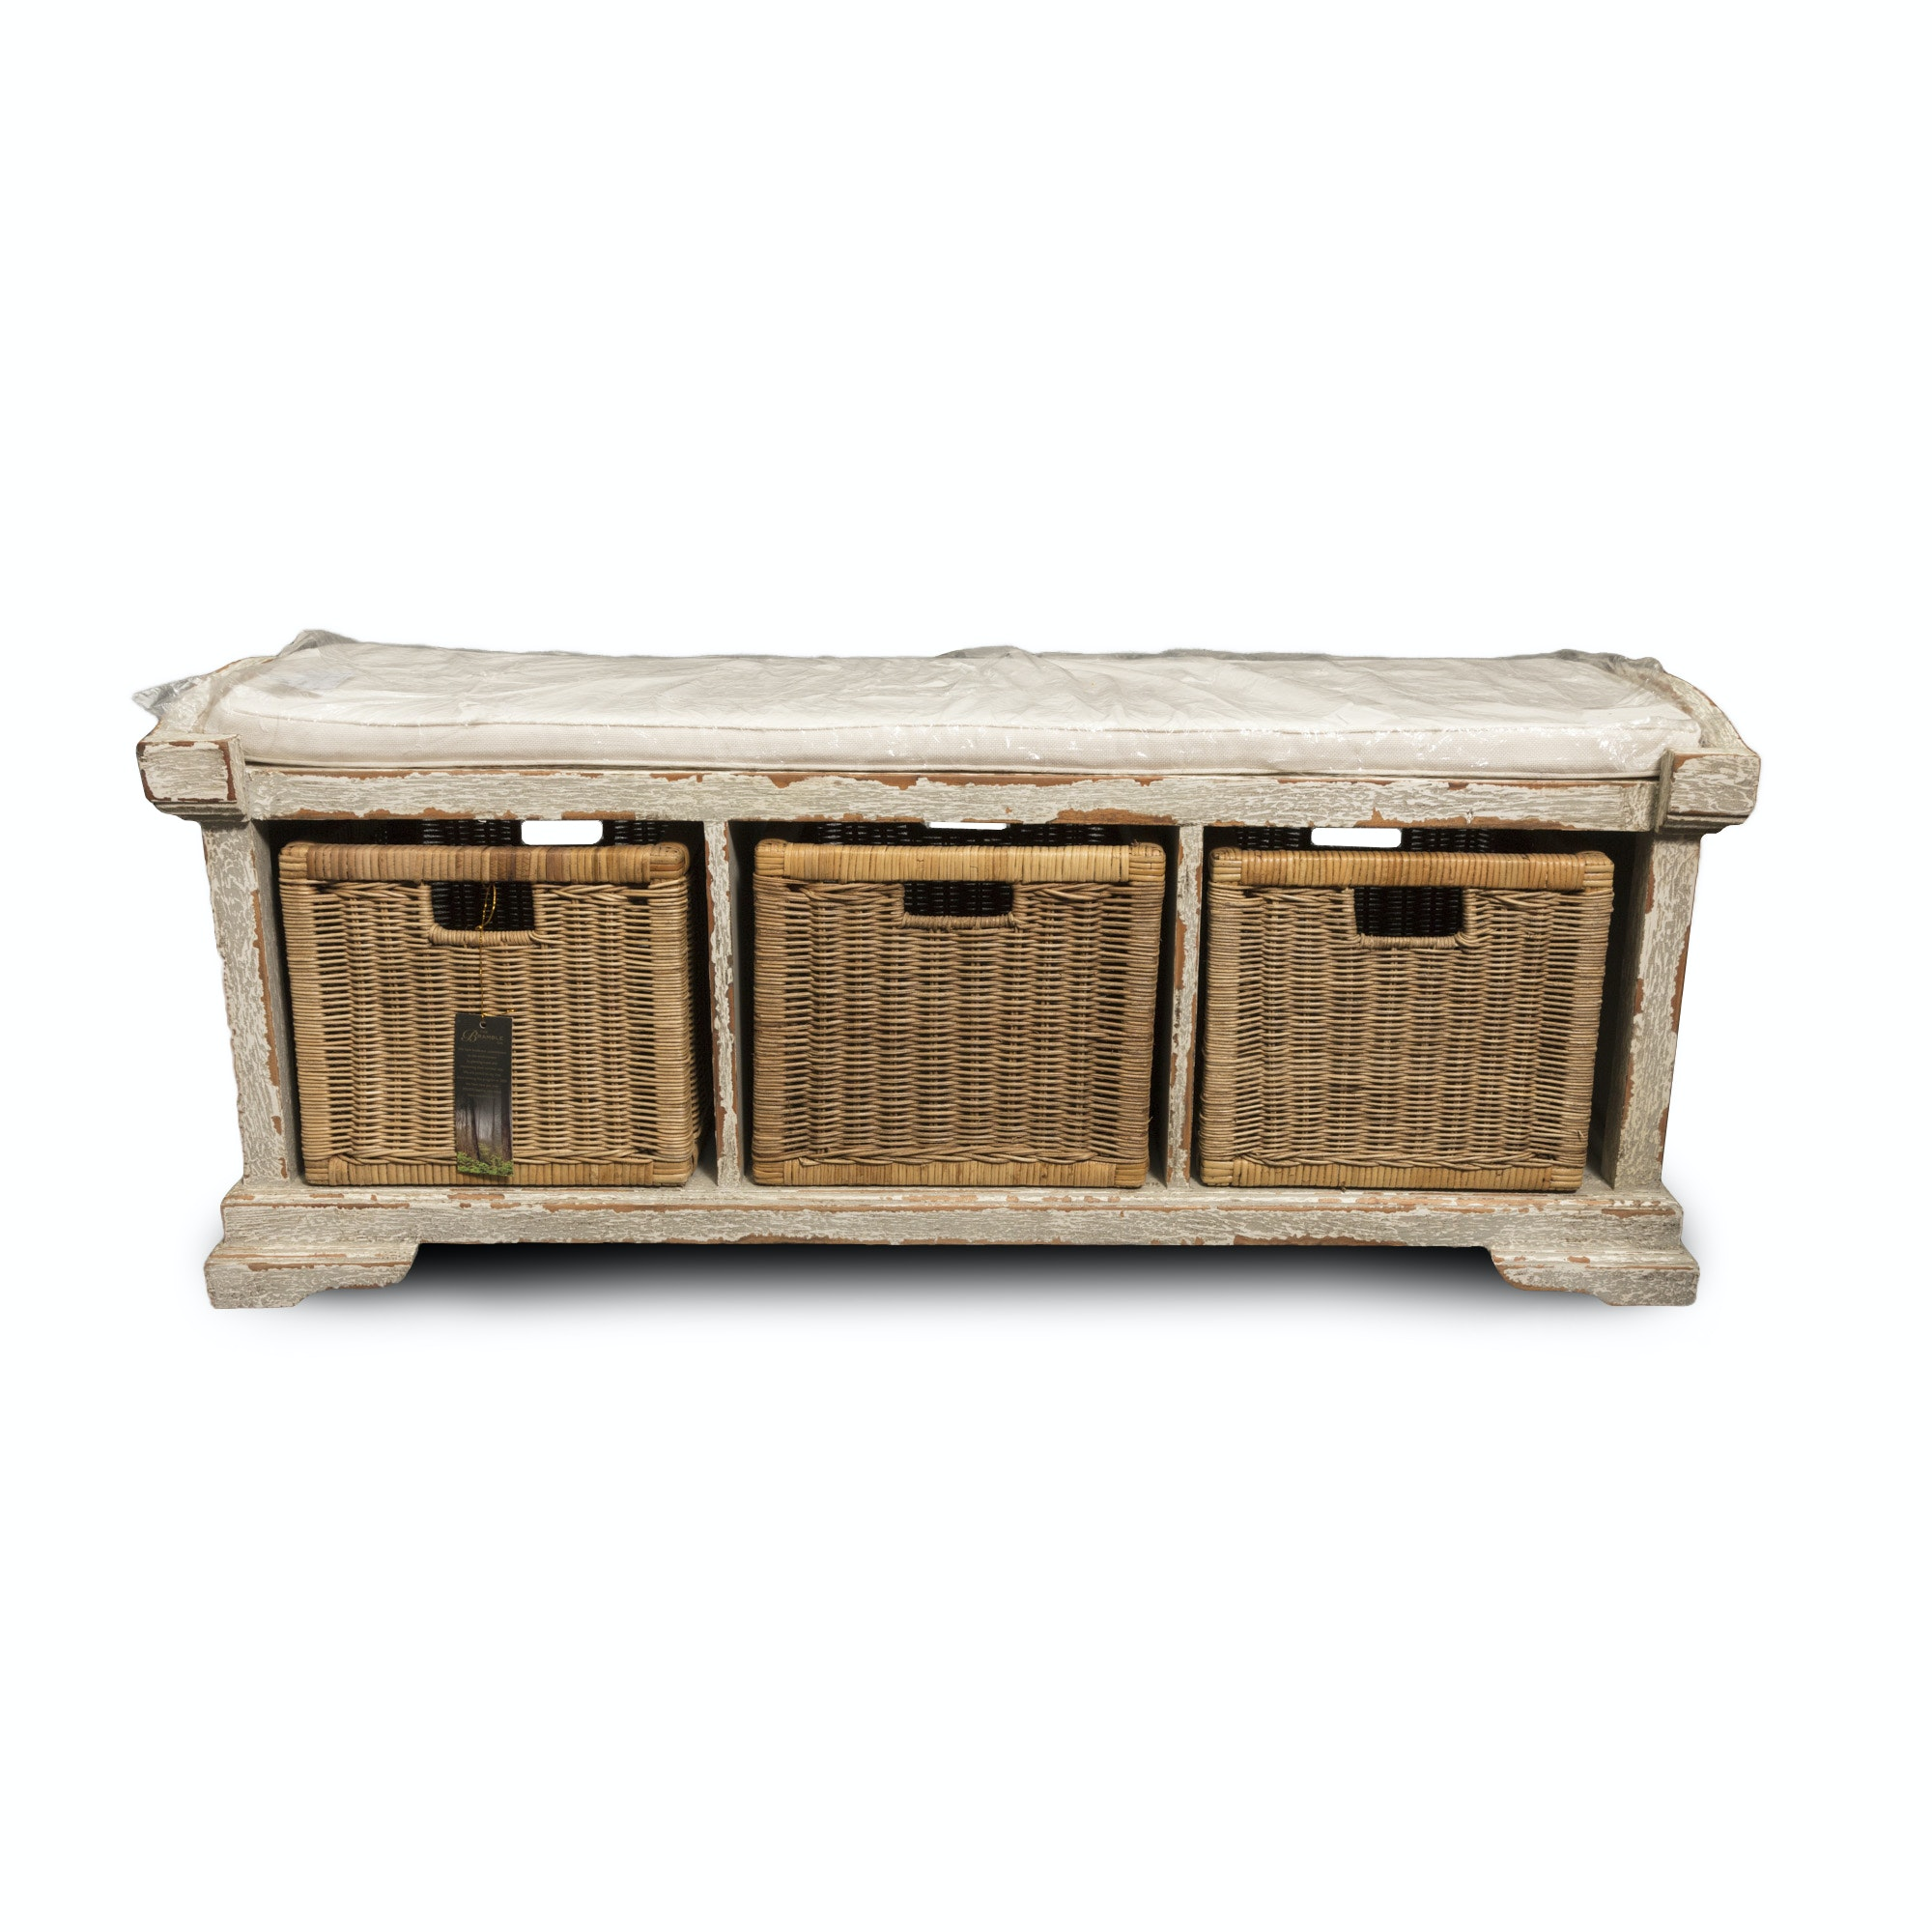 Rustic Style Storage Bench with Wicker Baskets